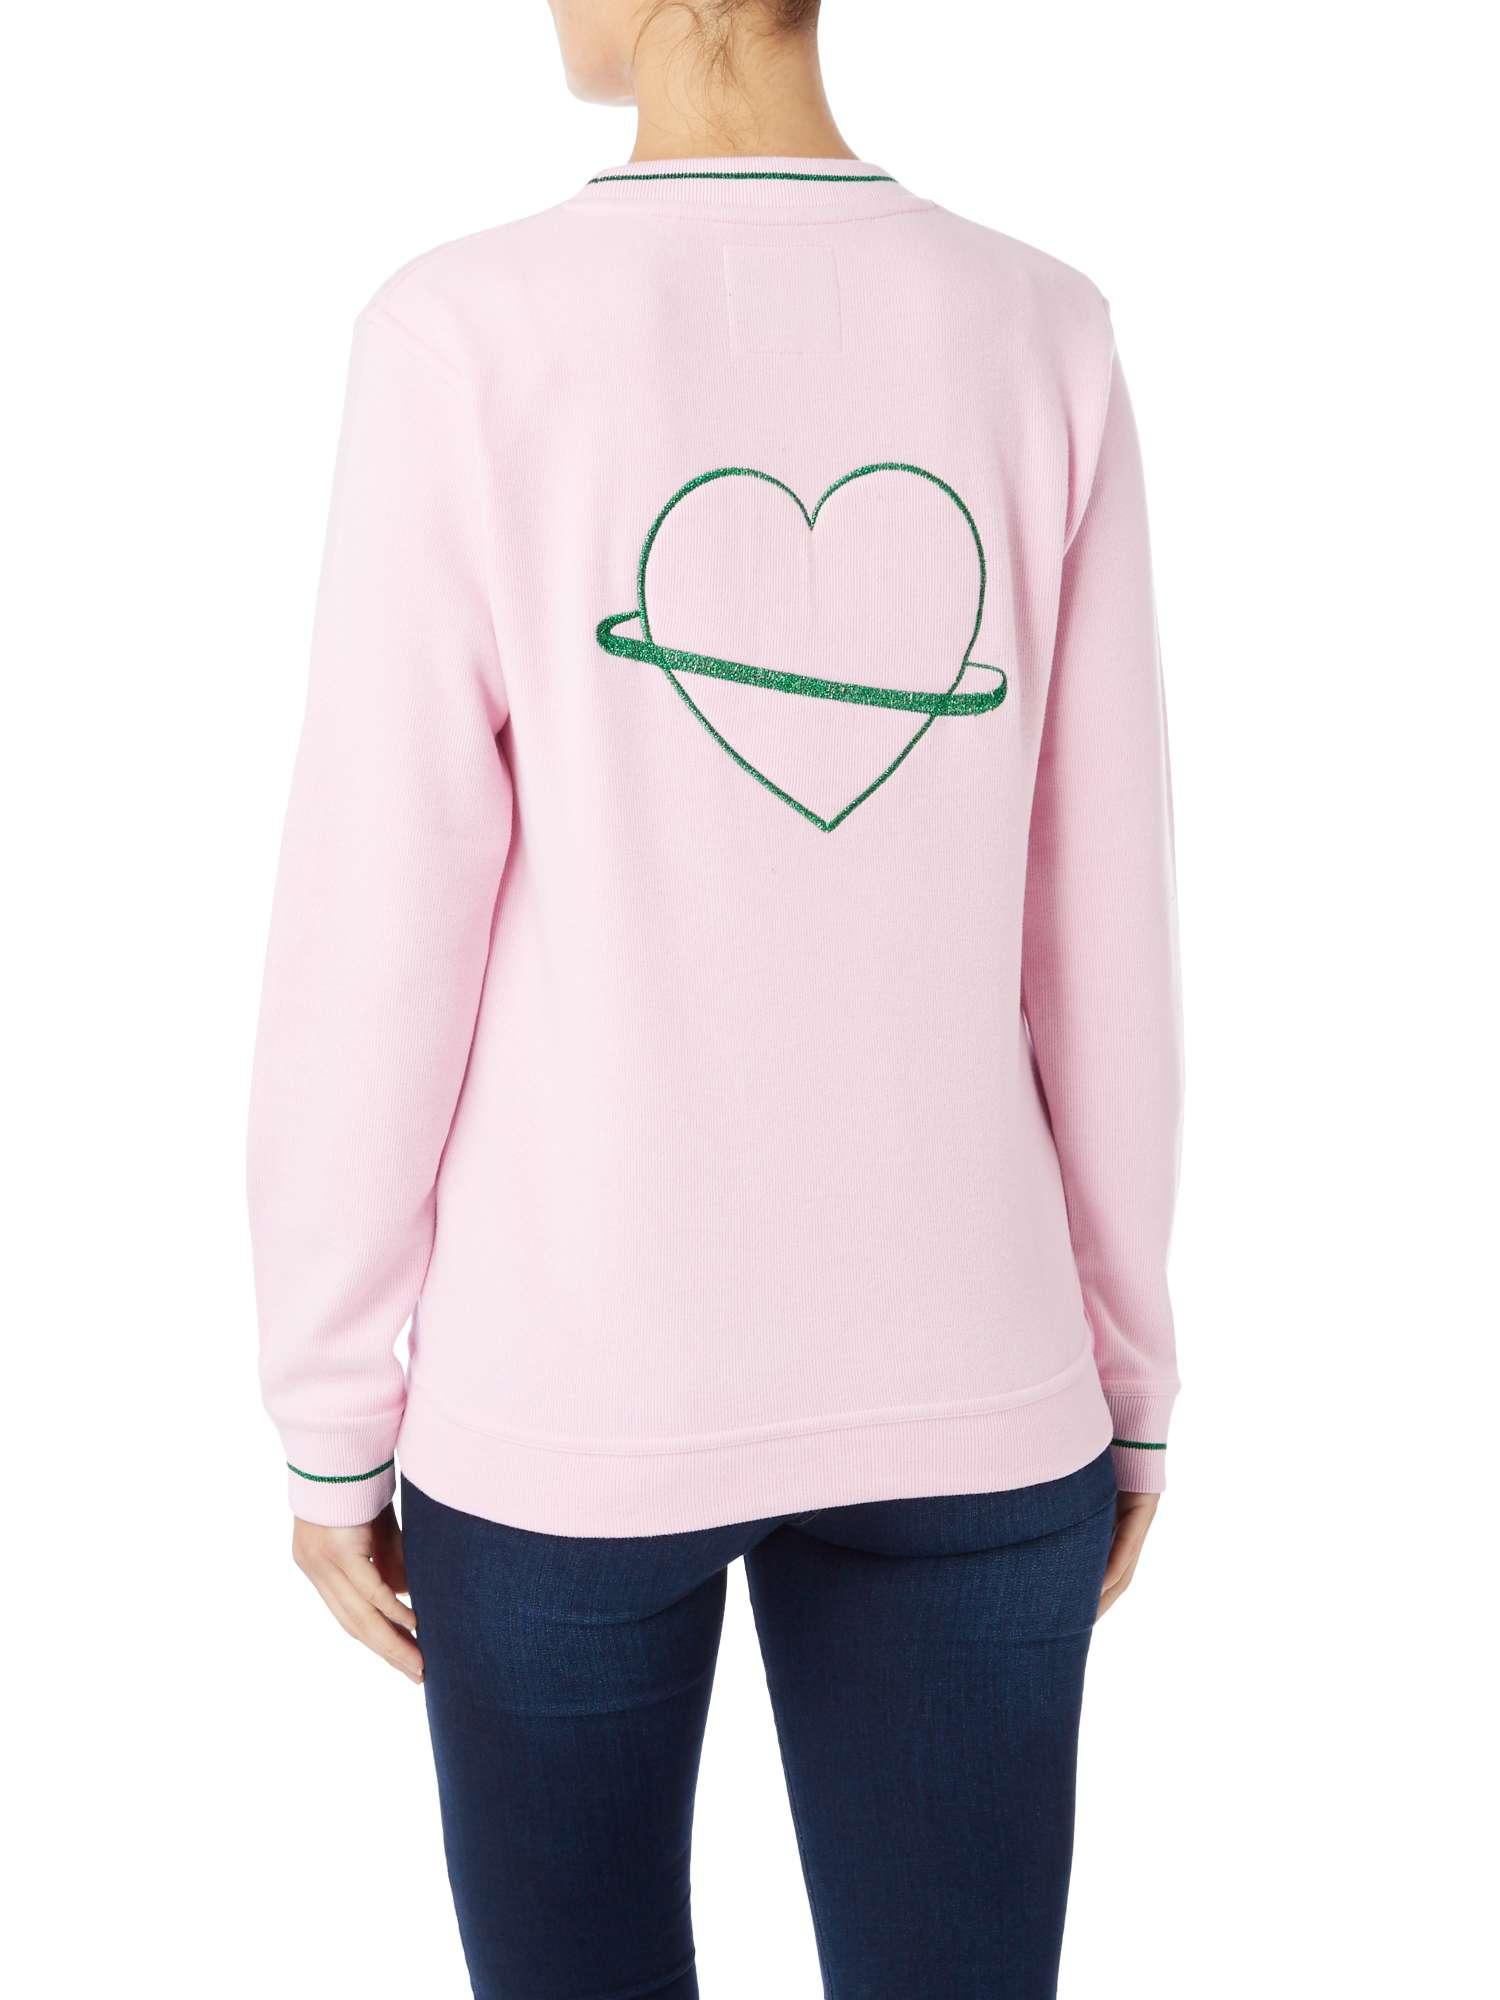 Sweater Blake Struck Pink Seven Love rIqp1wqx